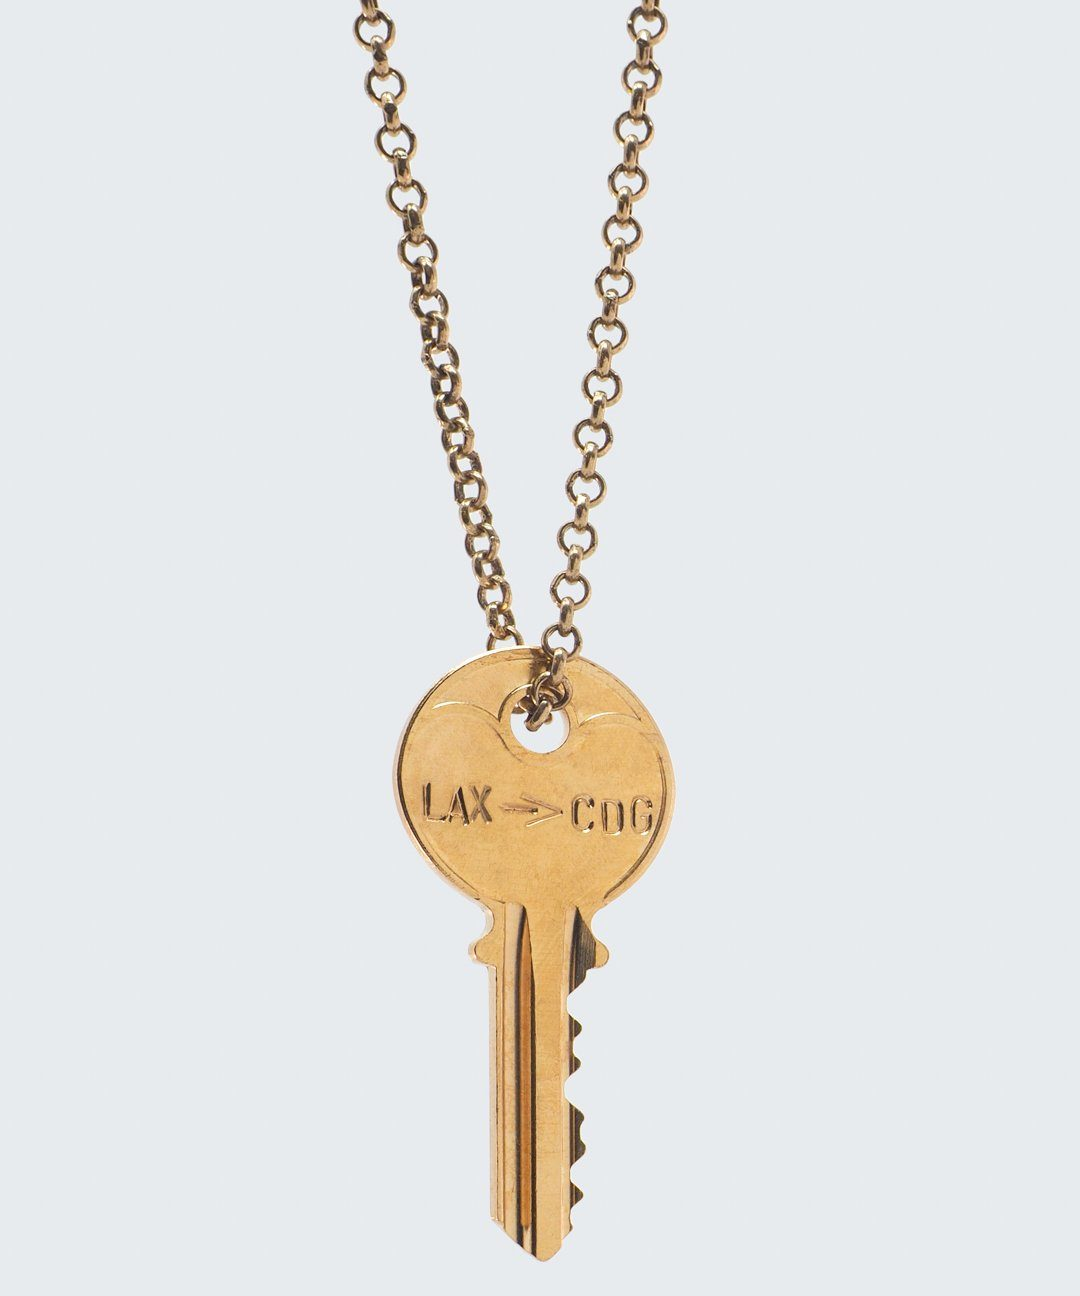 Travel Classic Key Necklace Necklaces The Giving Keys CUSTOM Gold